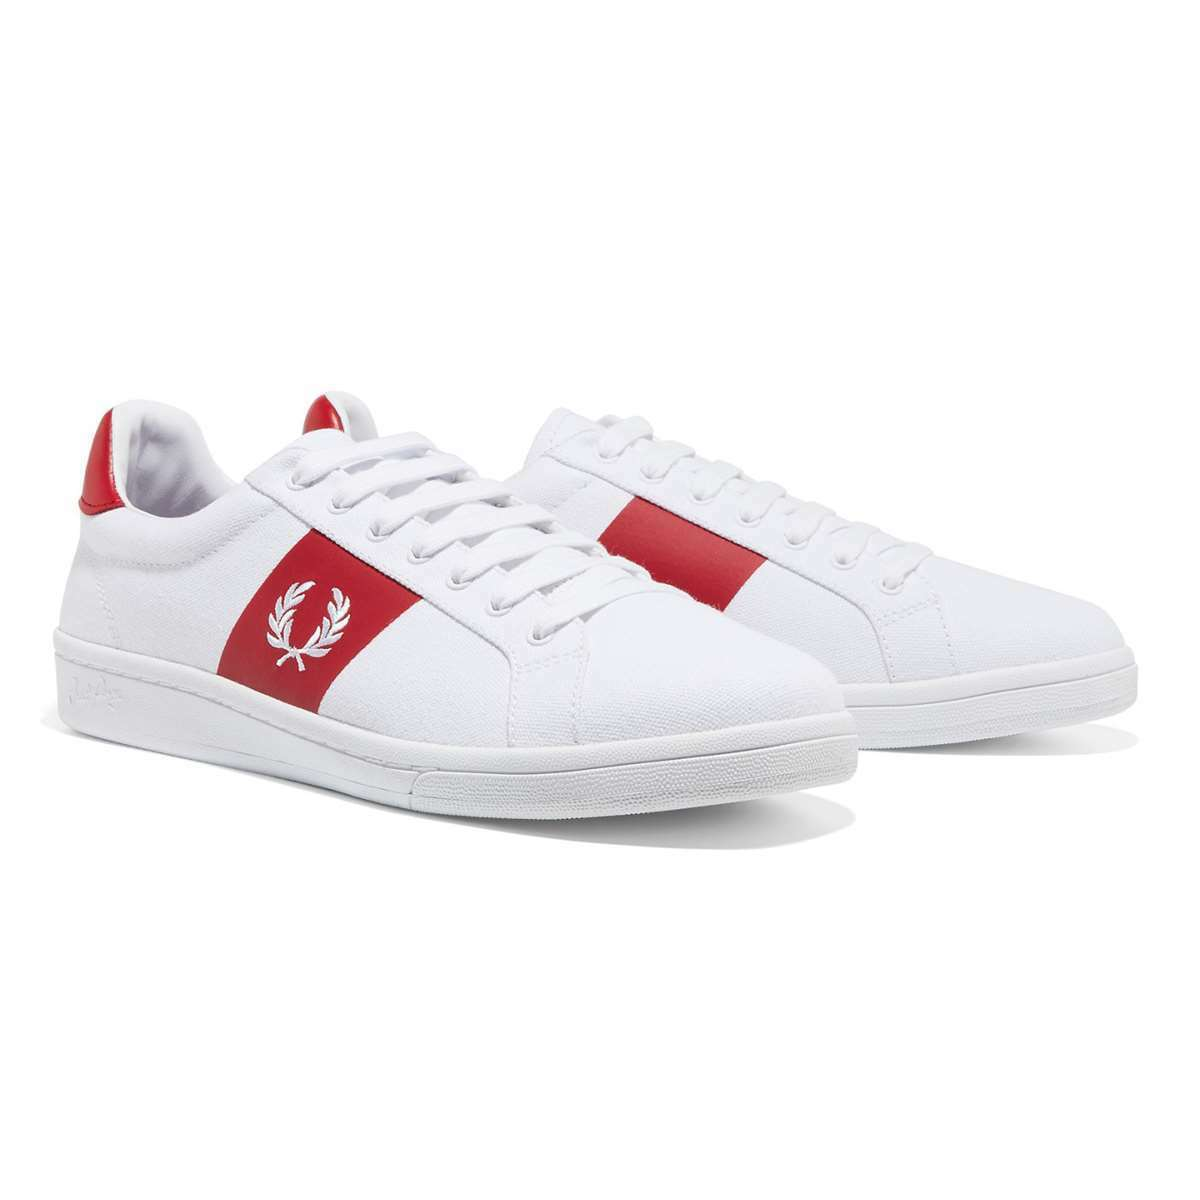 Men Weiß FROT Perry Schuhes B721 Weiß Men Sneakers New Authentic b5c4bd